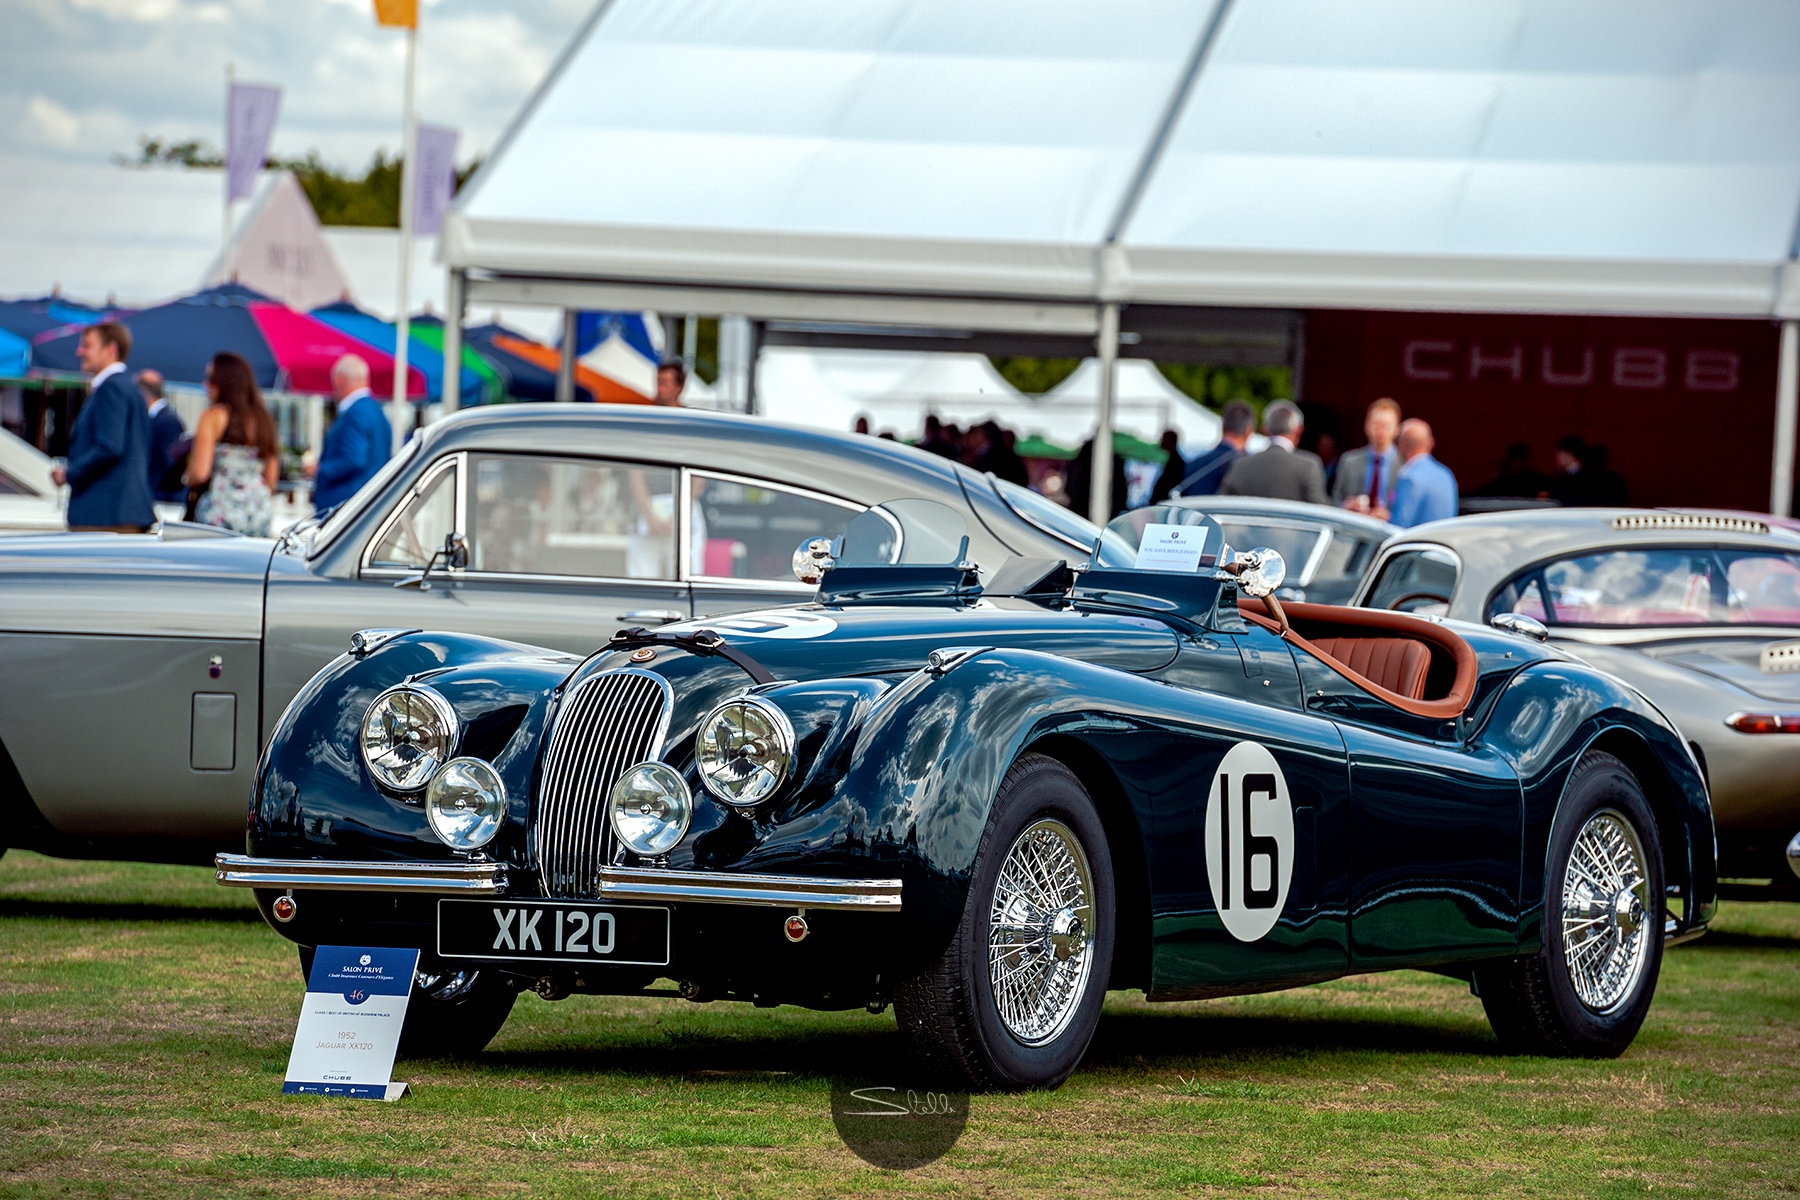 Stella Scordellis Salon Prive 2018 47 Watermarked.jpg